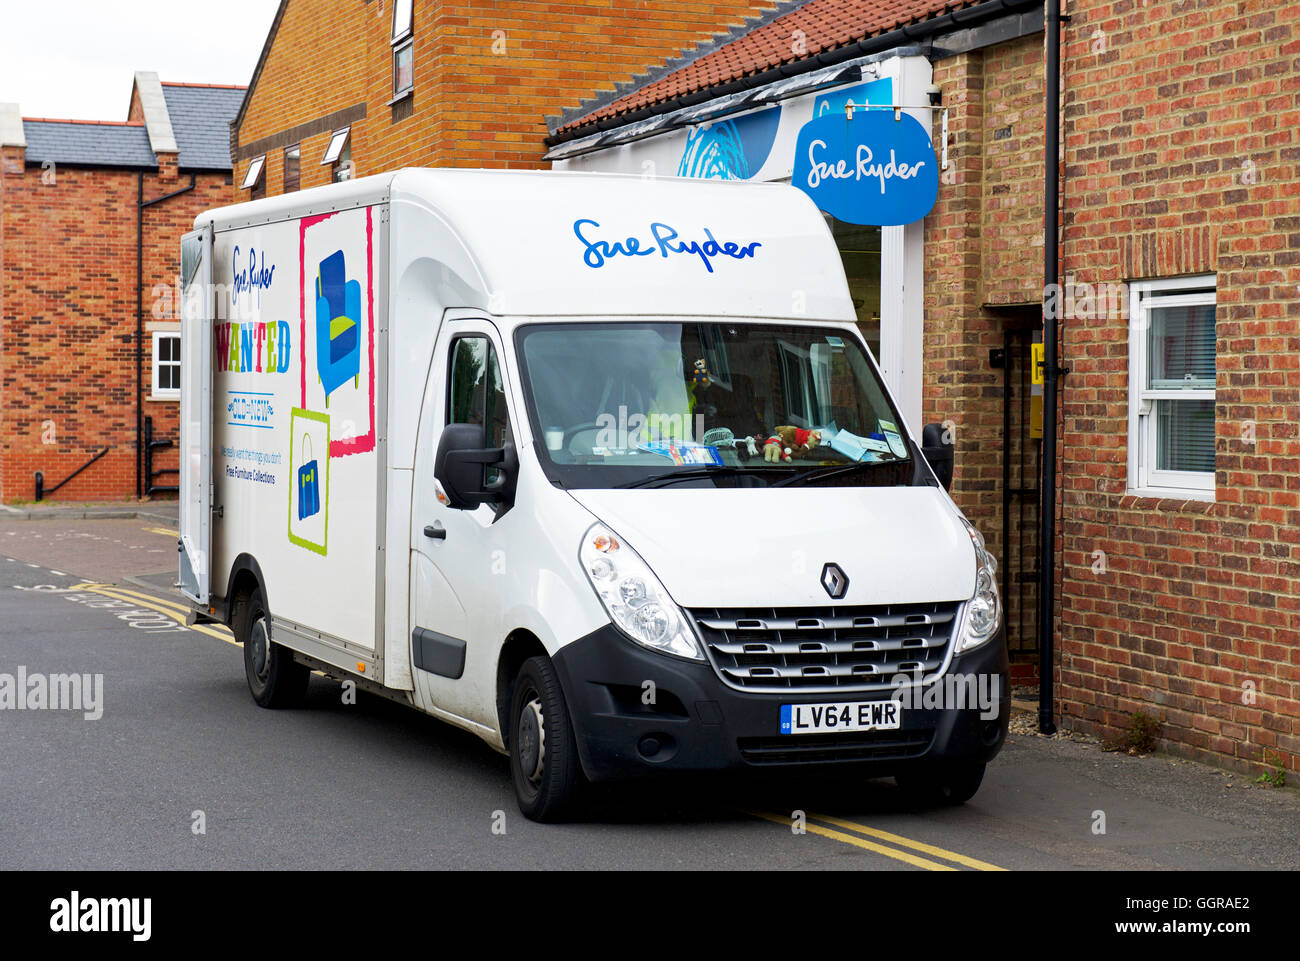 Van parked outside Sue Ryder charity shop, England UK - Stock Image